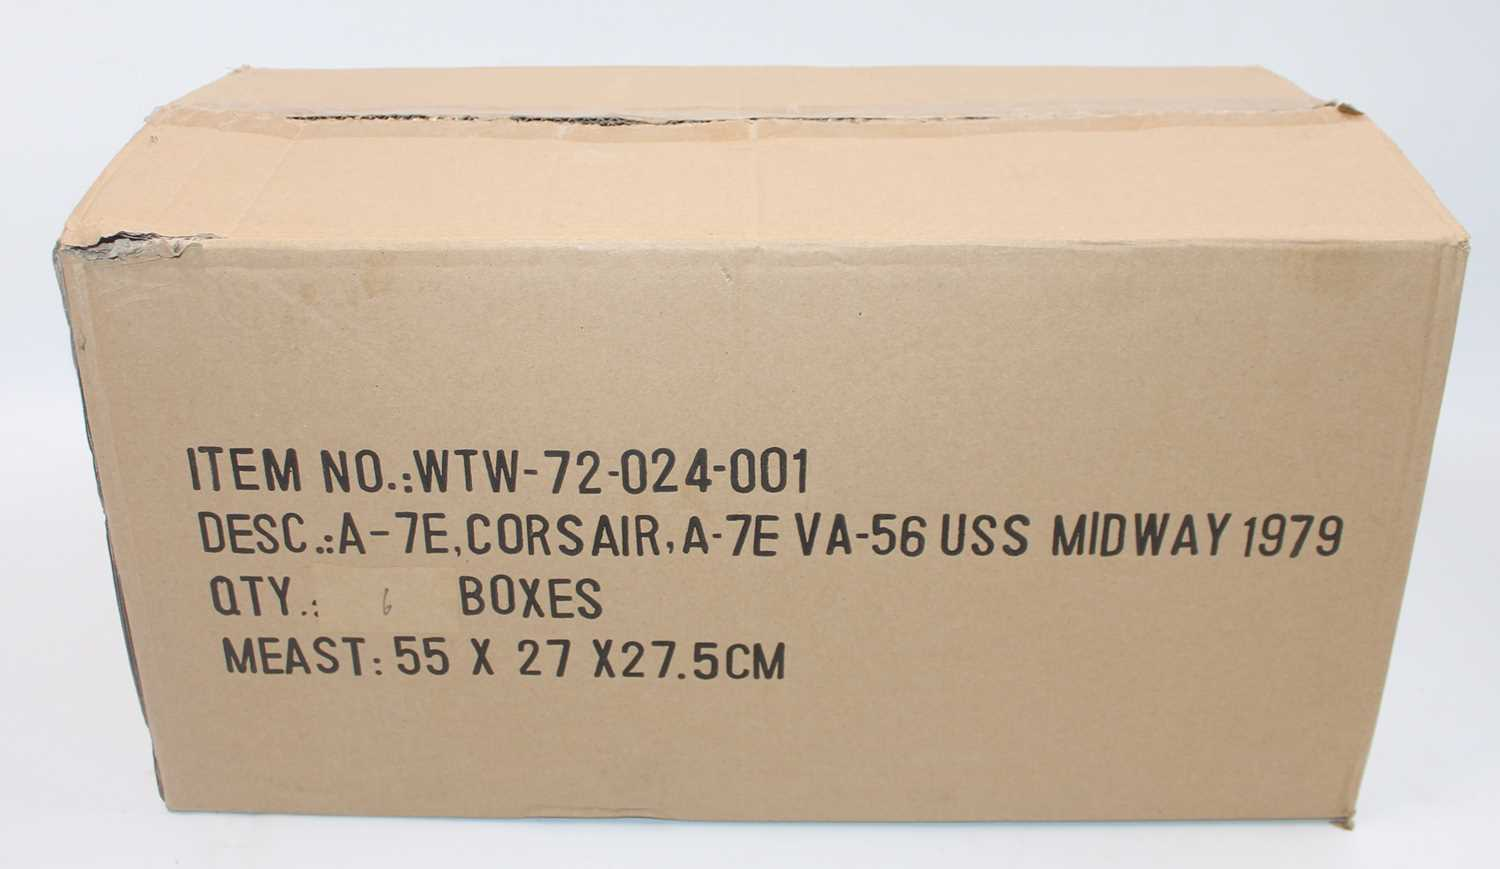 A Sky Guardians/Witty Wings, trade box of six limited edition 1:72 scale A-7E Corsair II VA-56 - Image 2 of 2